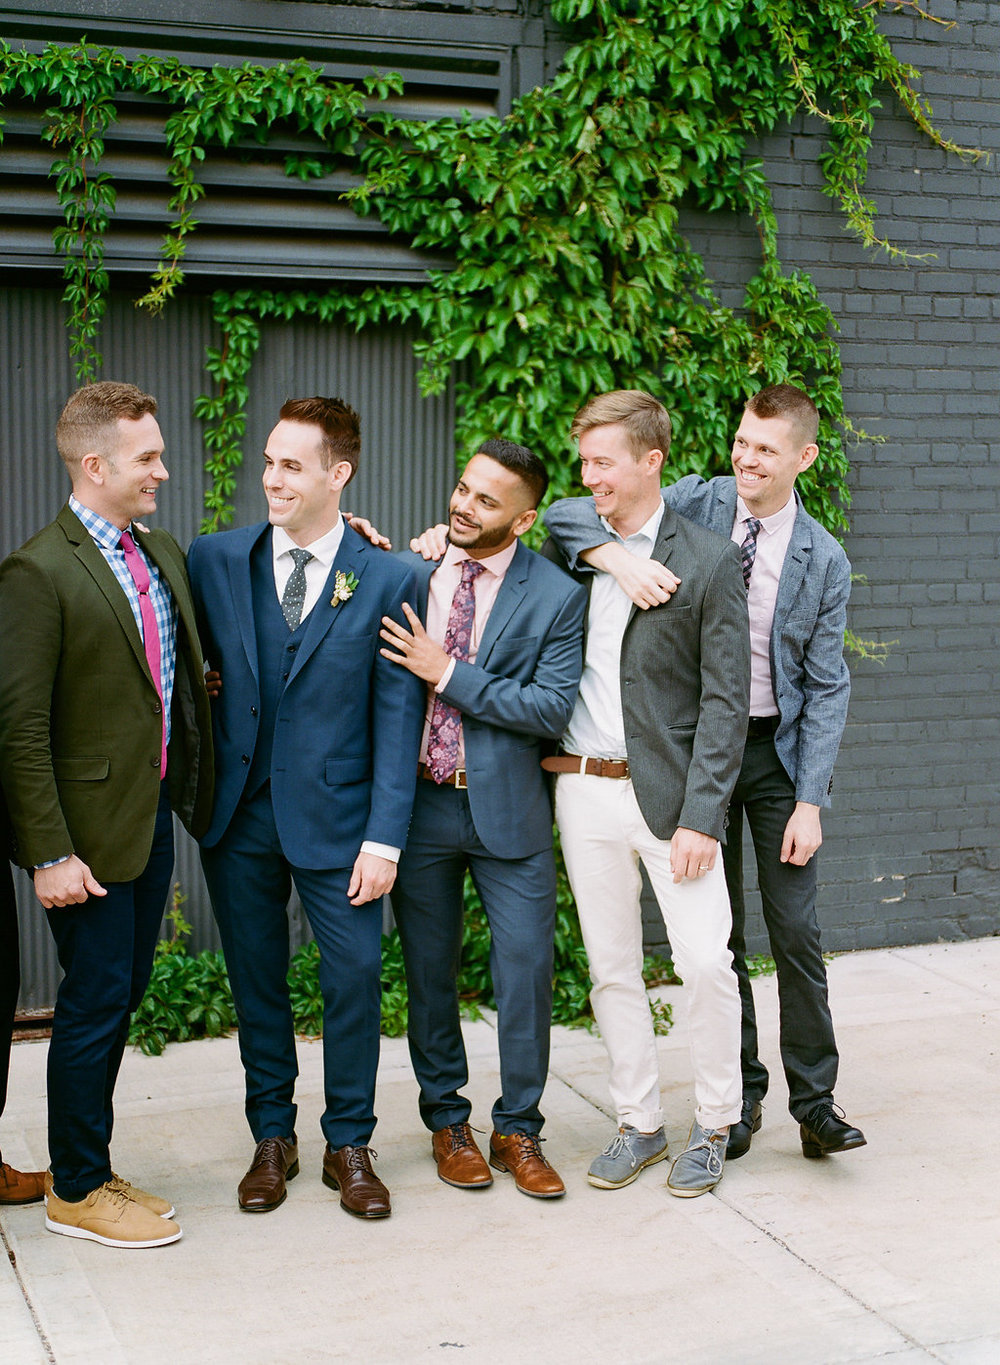 Carly Milbrath Photography | Justin and Jacob | PAIKKA Minnesota Wedding Venue | Same sex wedding iwth two grooms37.JPG